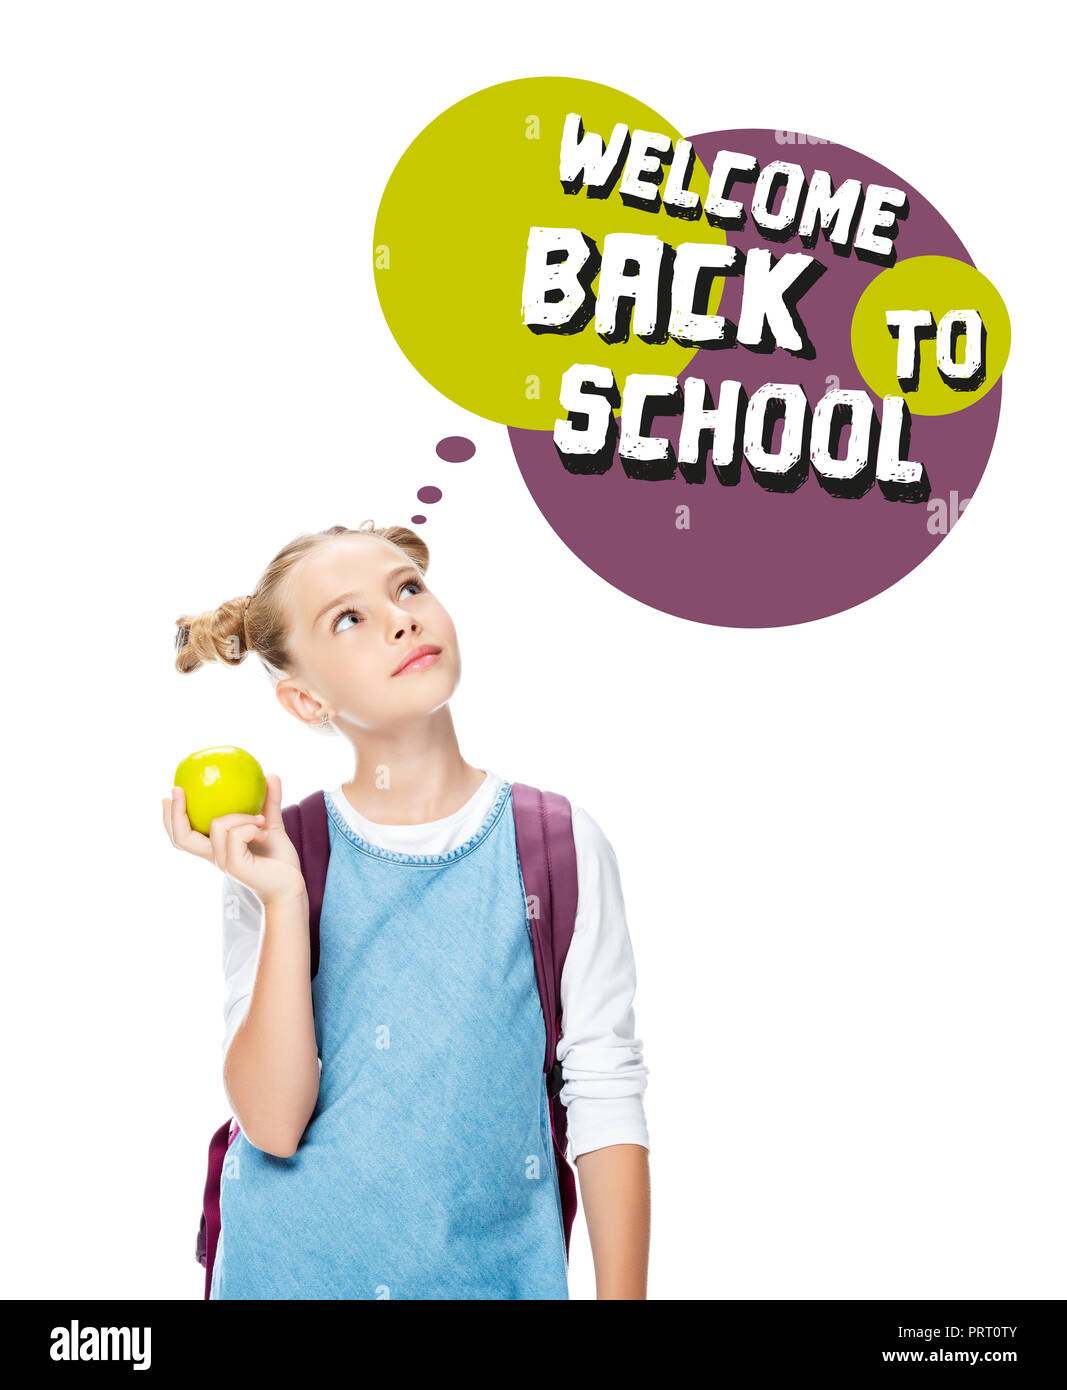 schoolchild holding apple and looking up at speech bubble